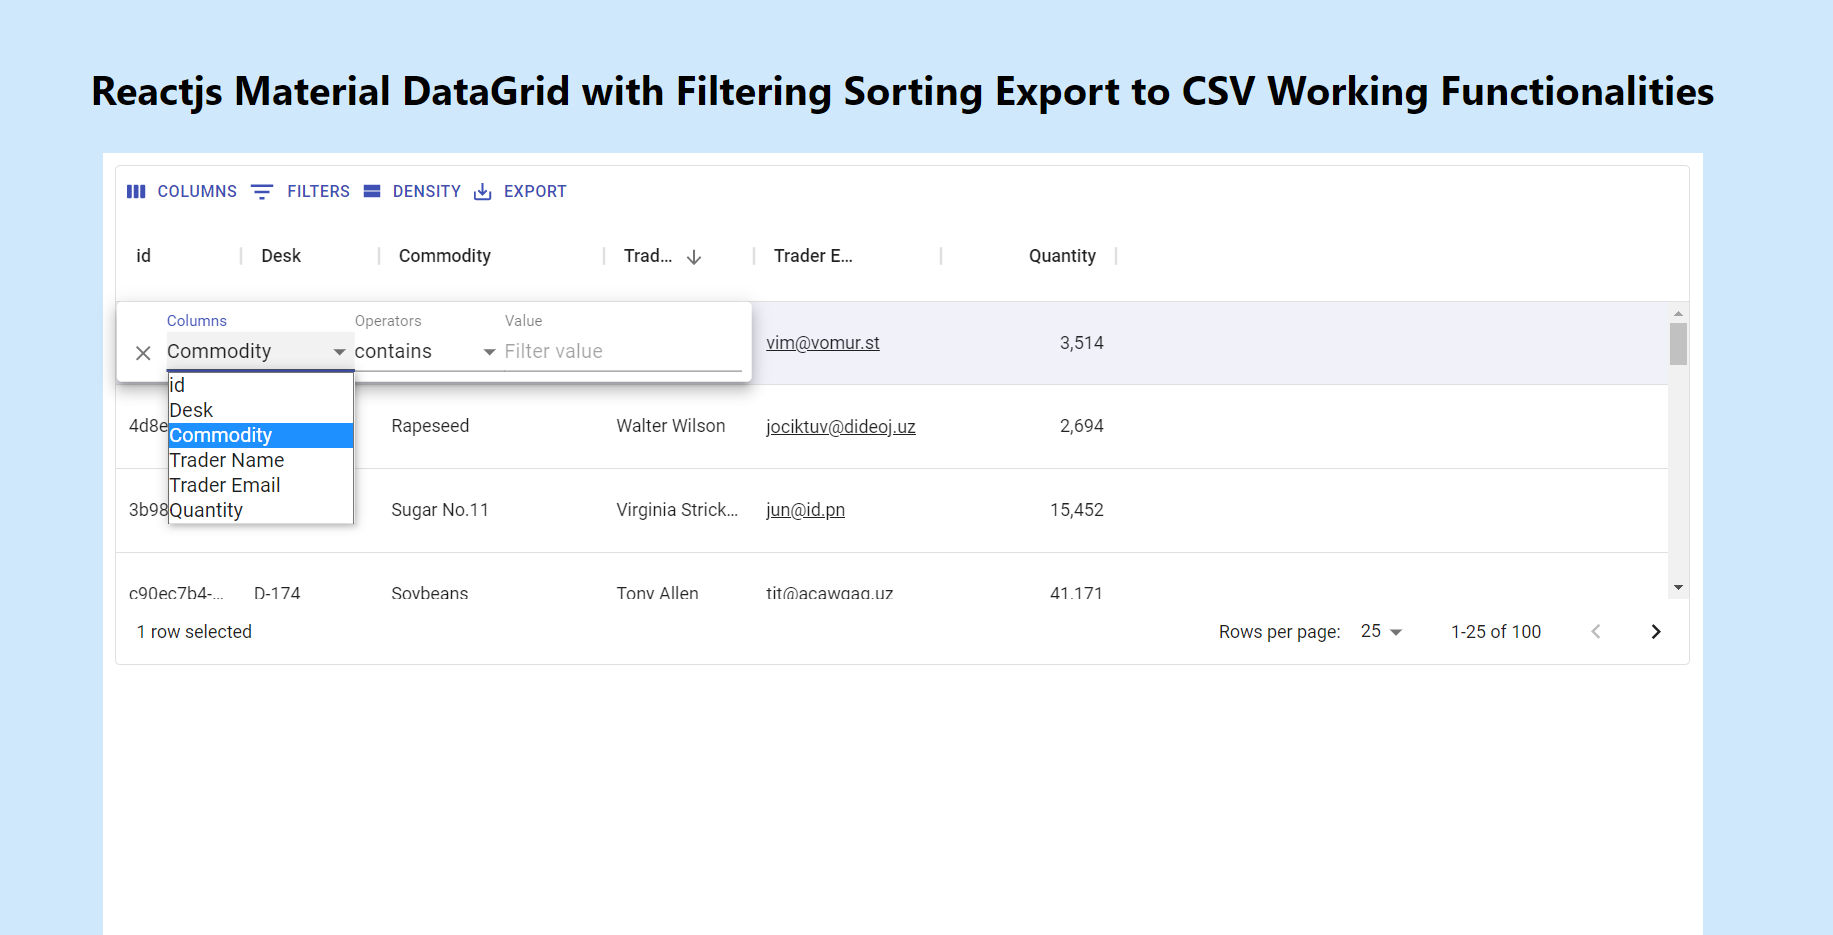 Reactjs Material Data Grid with Filtering Sorting Export to CSV Working Functionalities